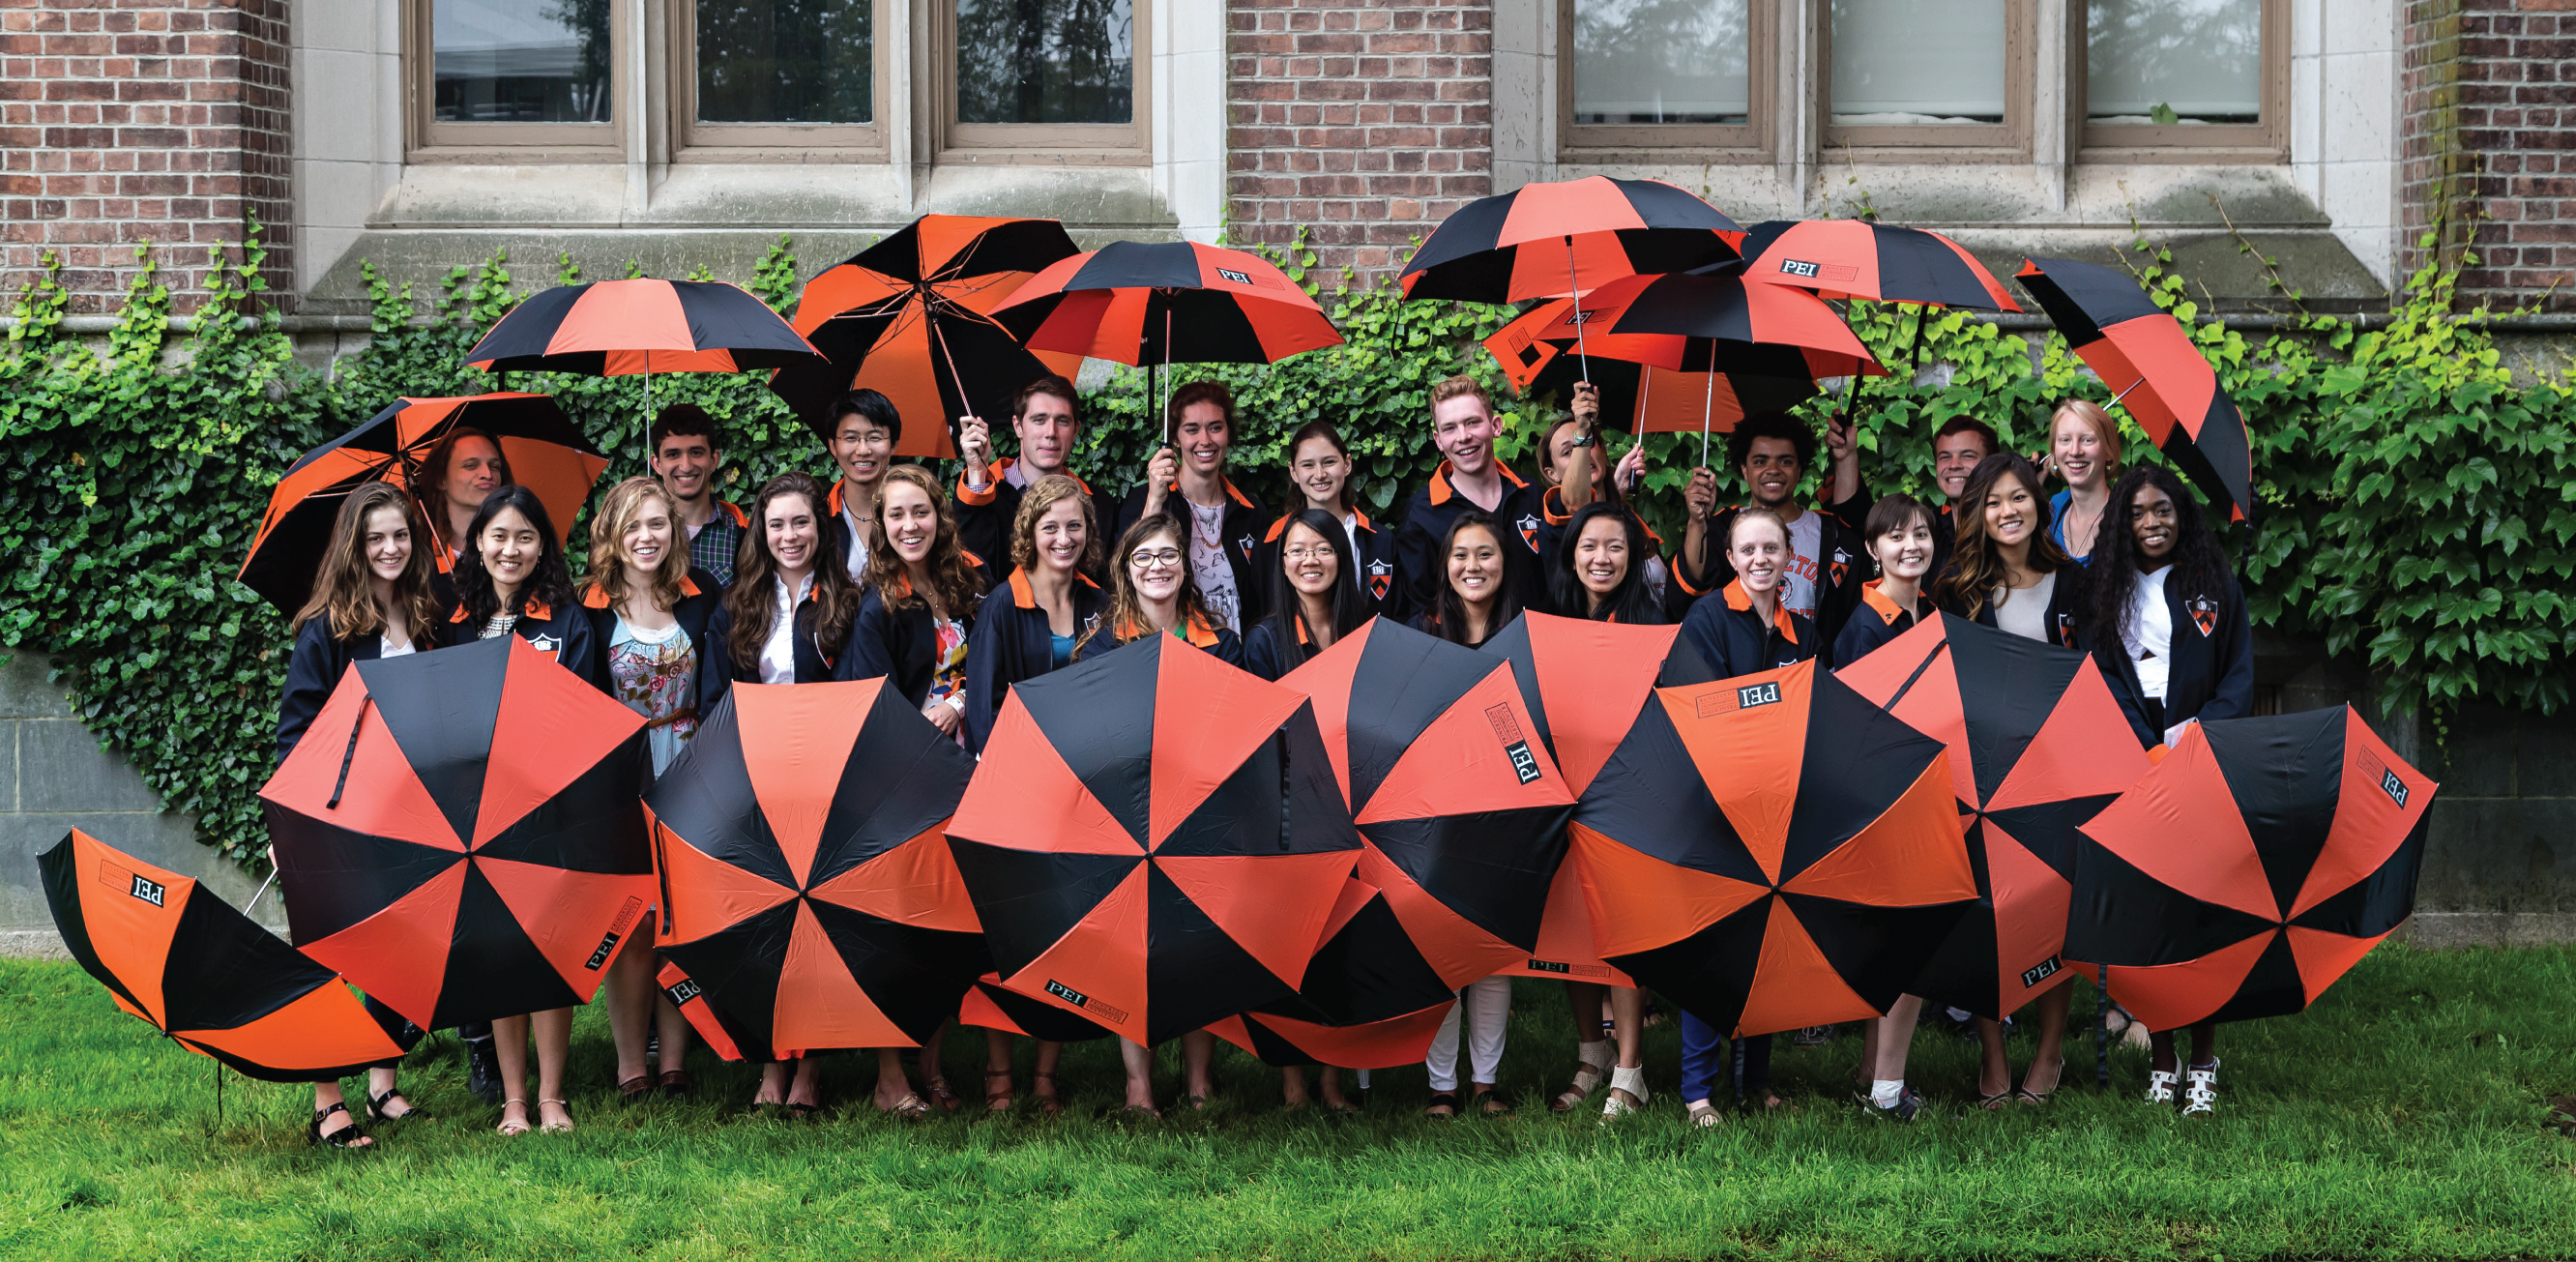 Class Day students posing with umbrellas